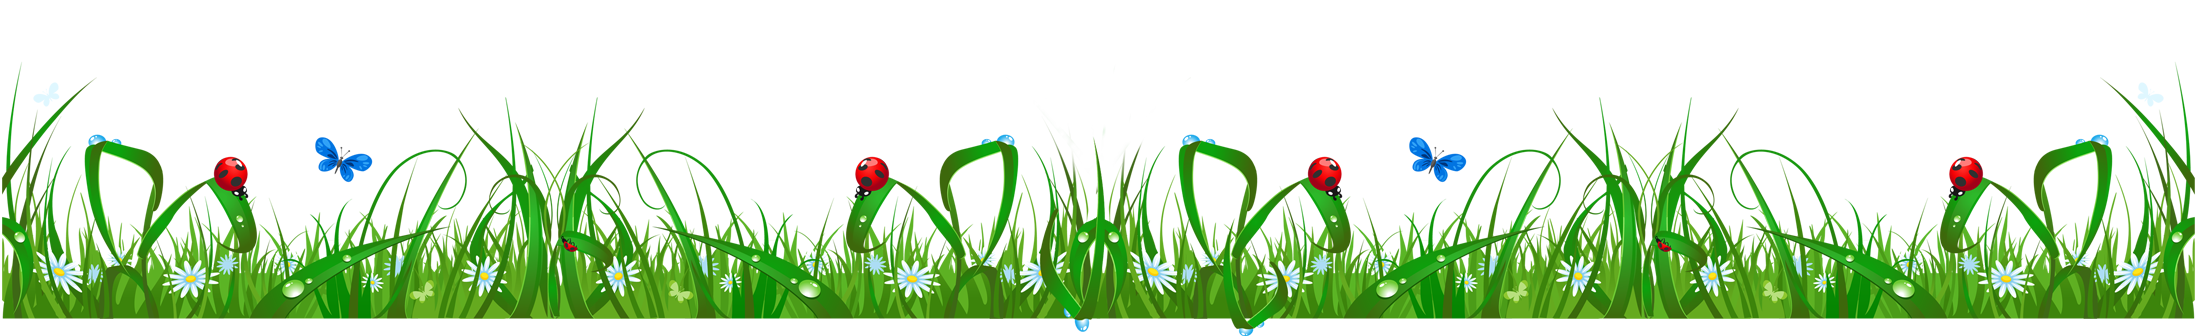 Flowers and grass clipart graphic royalty free stock Grass with Flowers and Ladybugs PNG Clipart graphic royalty free stock